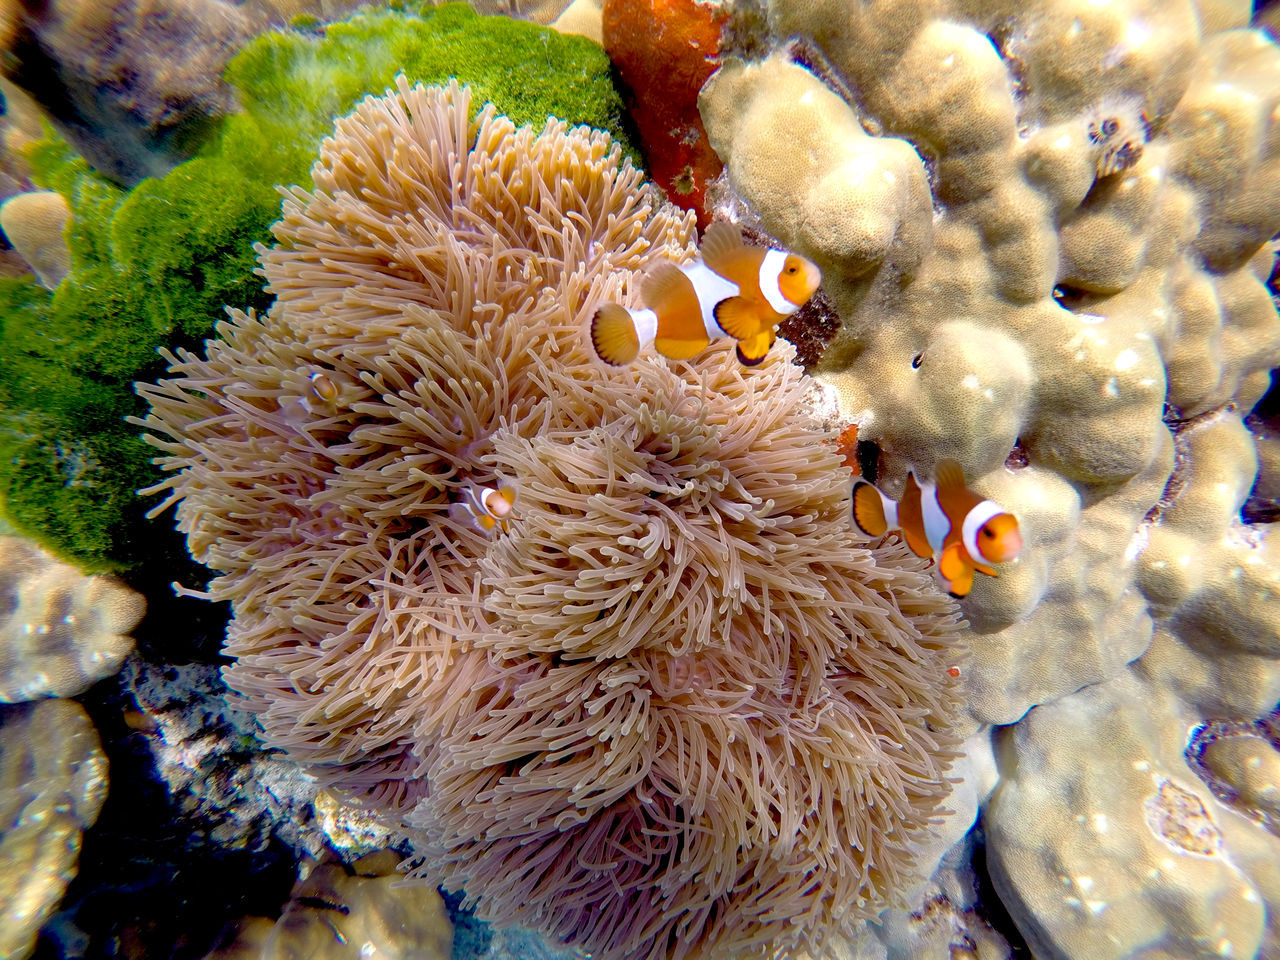 underwater, clown fish, undersea, sea anemone, coral, animal themes, sea life, water, sea, symbiotic relationship, animals in the wild, no people, animal wildlife, nature, close-up, outdoors, day